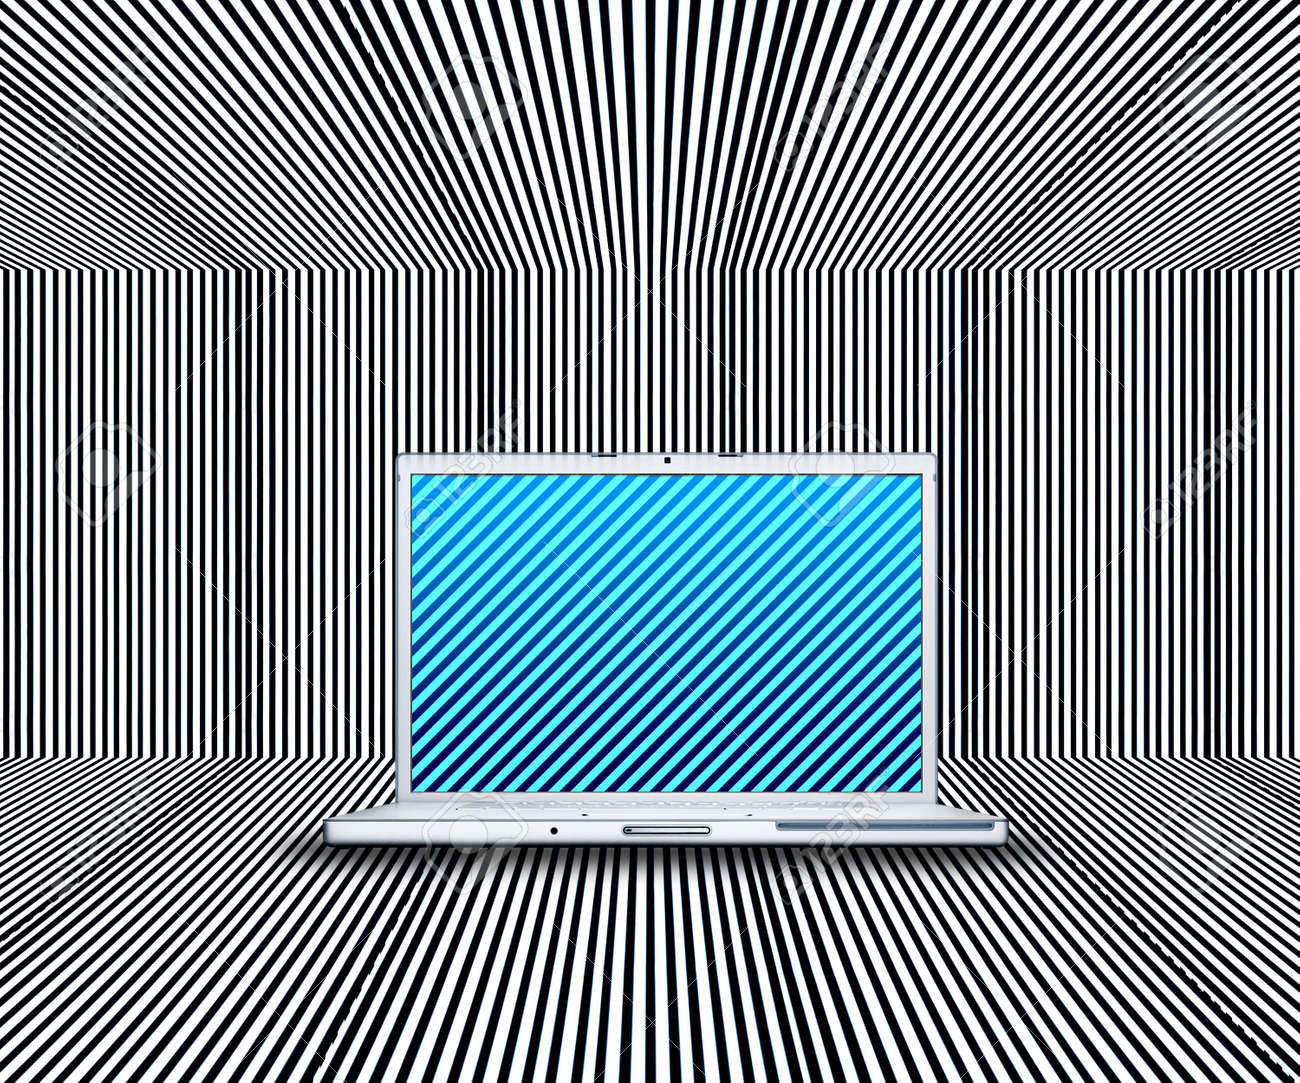 laptop with creative screen on the stripes background Stock Photo - 3840439